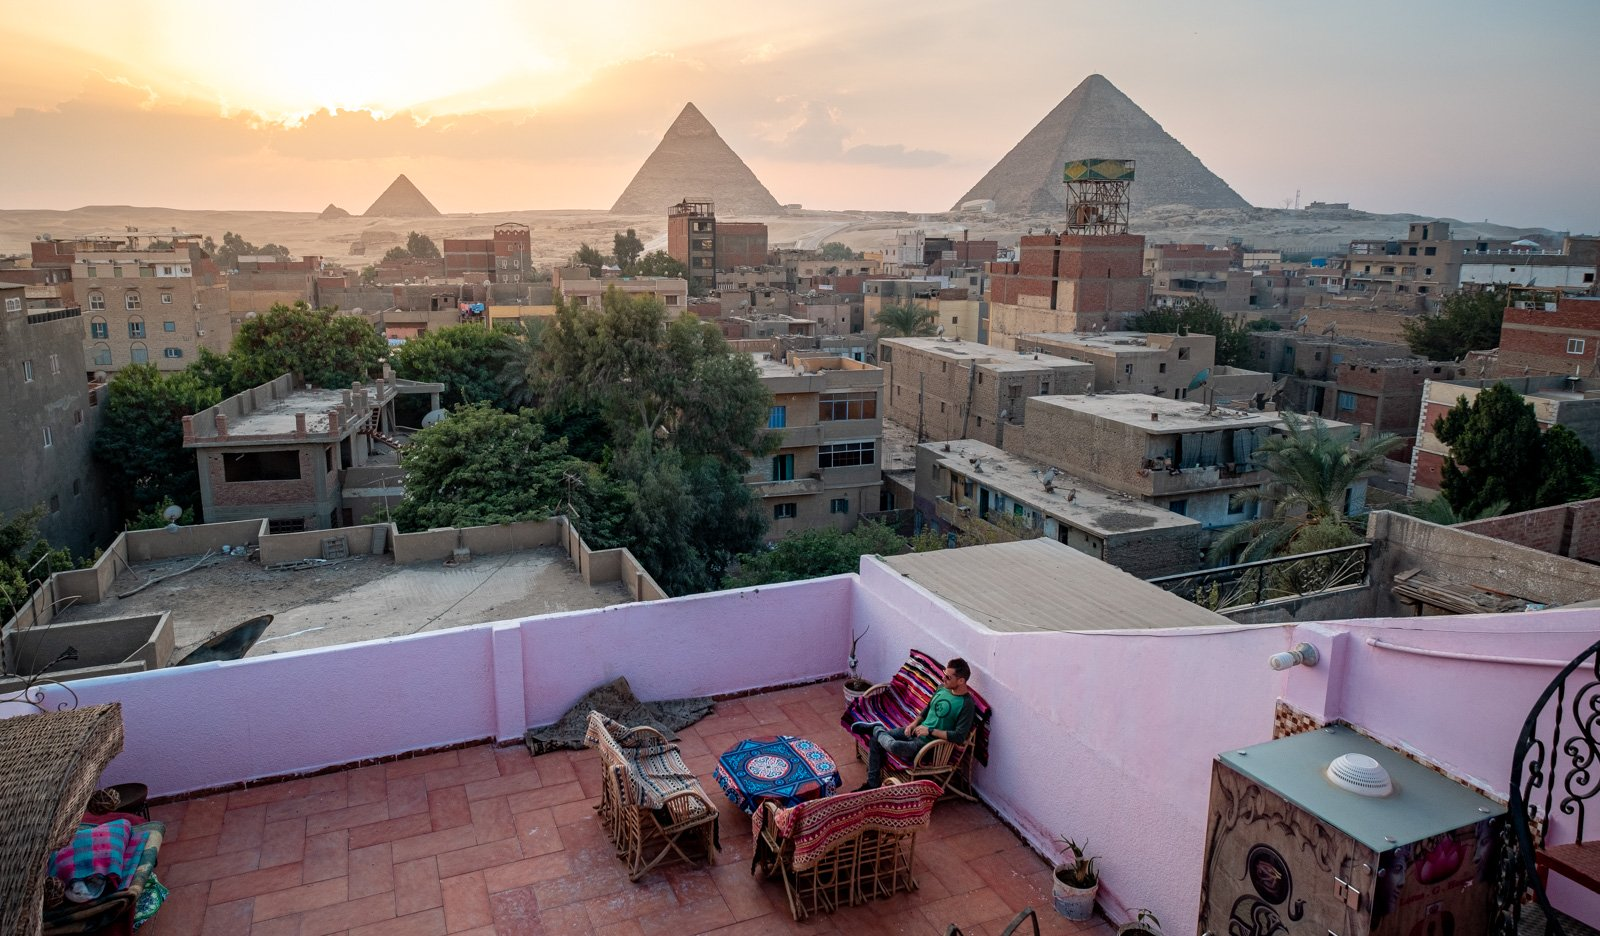 The balcony of a local hotel in Cairo overlooking the pyramids in Egypt